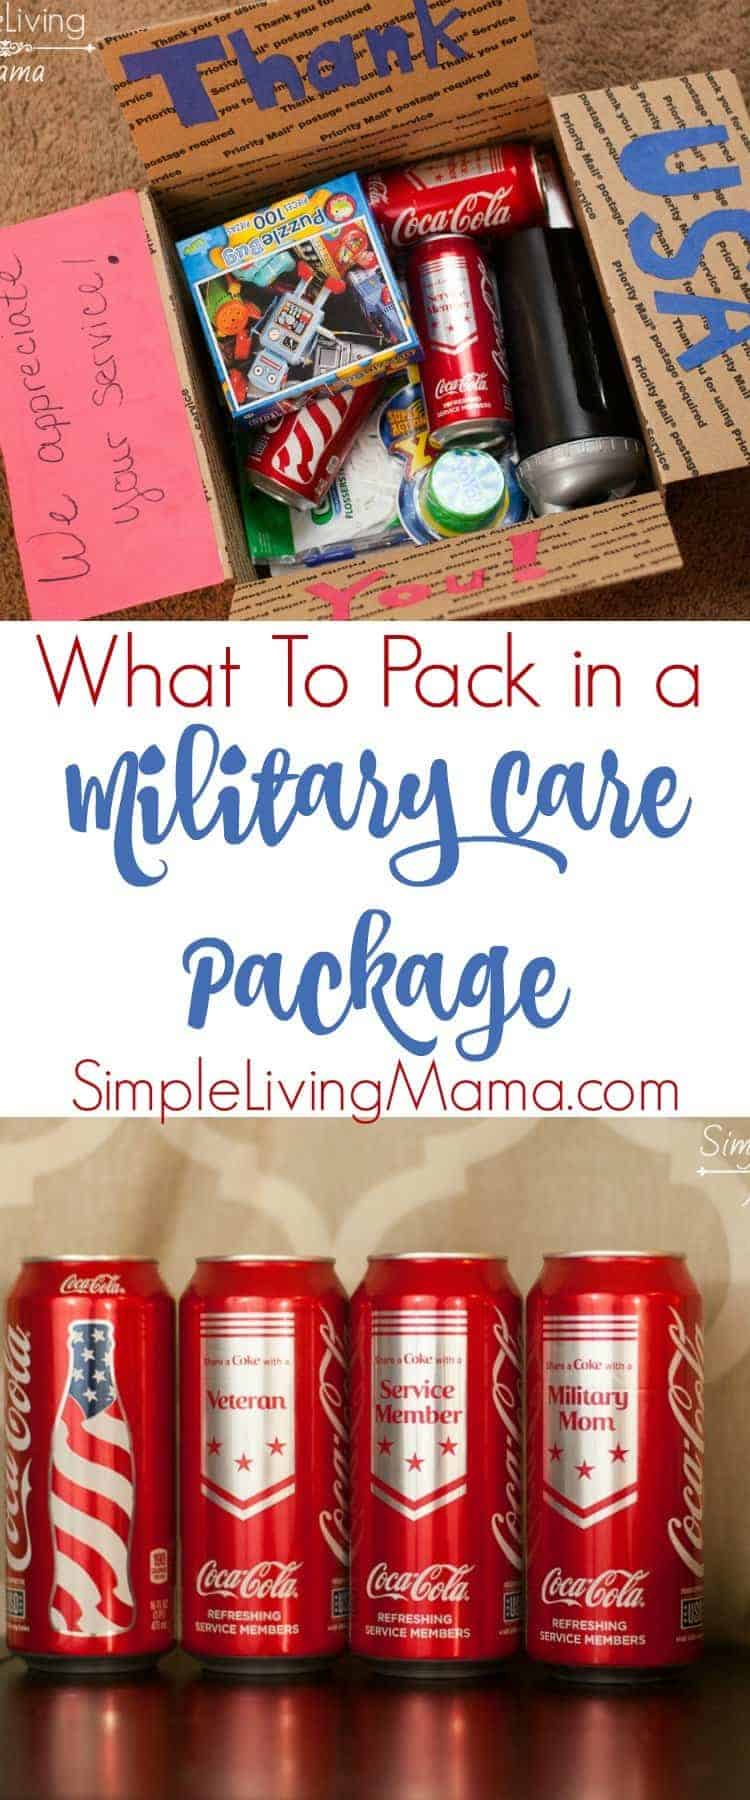 What to pack in a military care package.